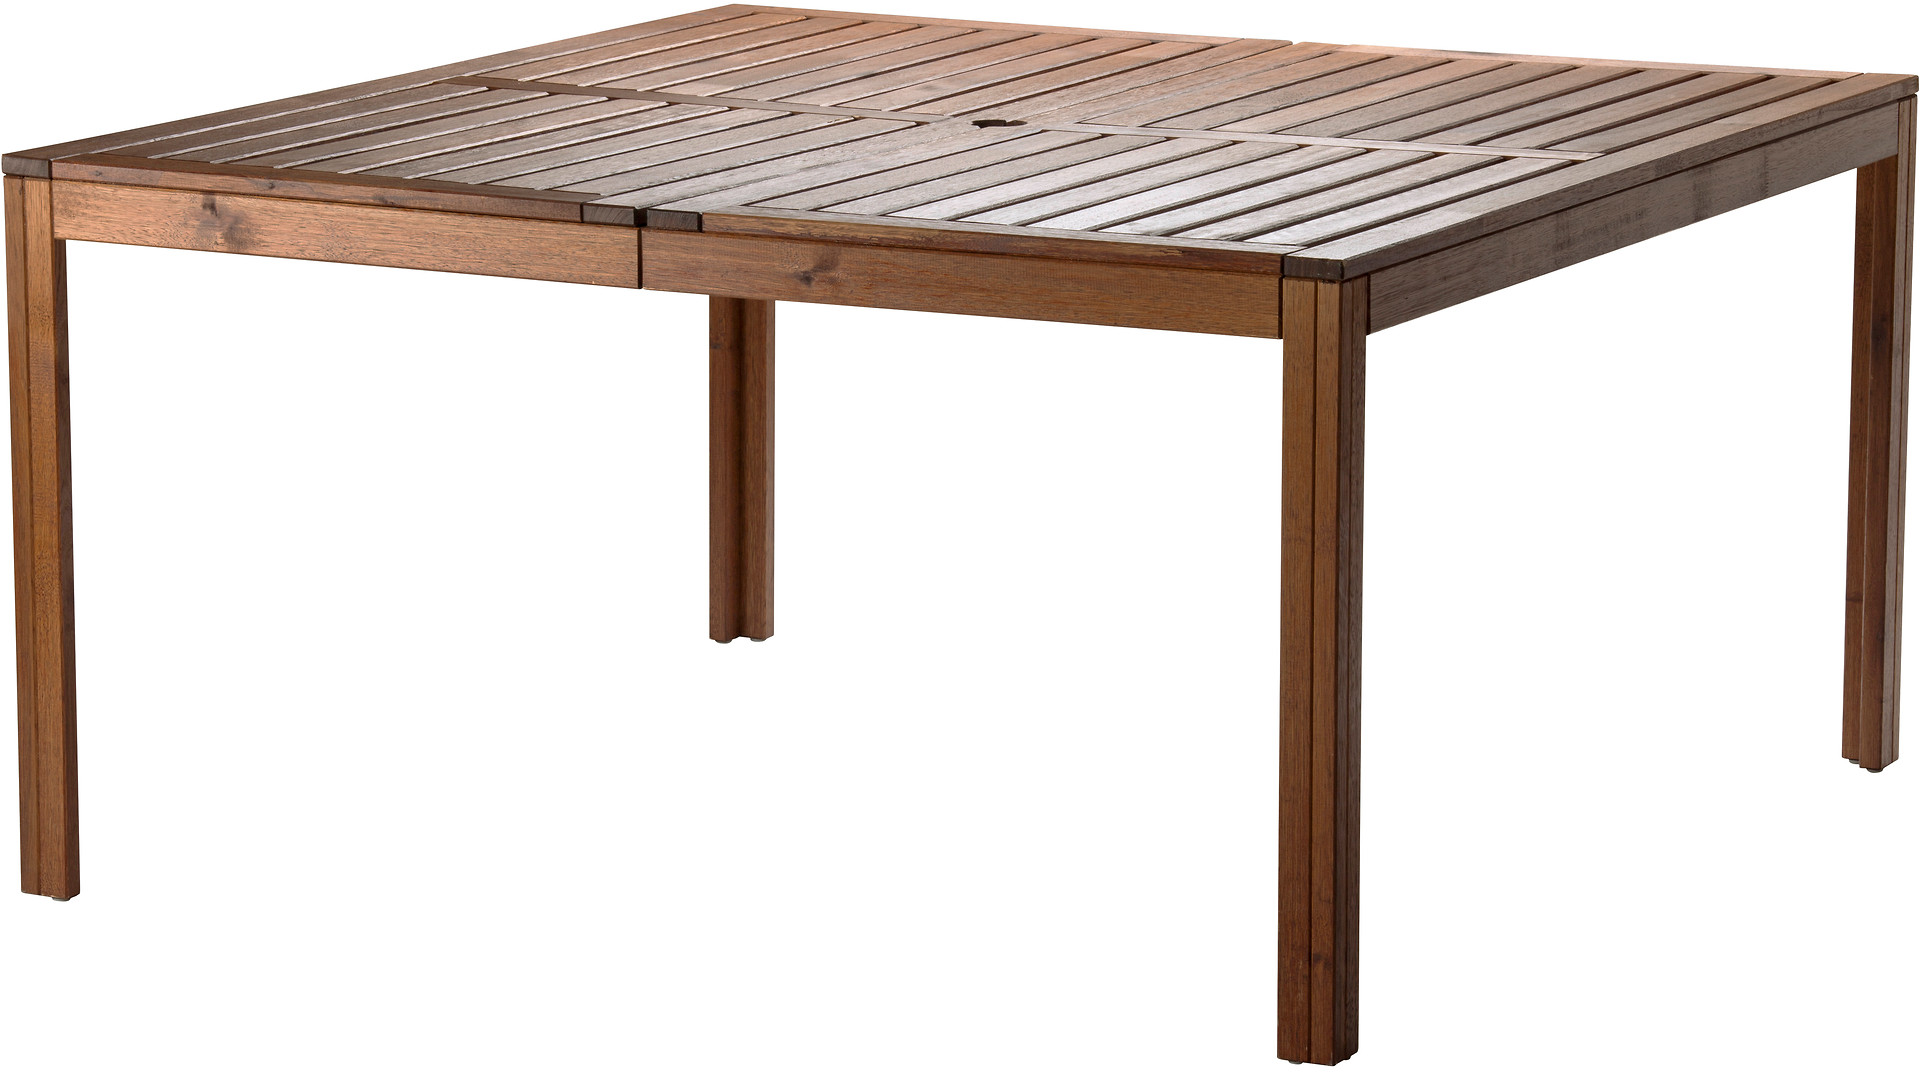 ÄPPLARÖ Table, outdoor - IKEA